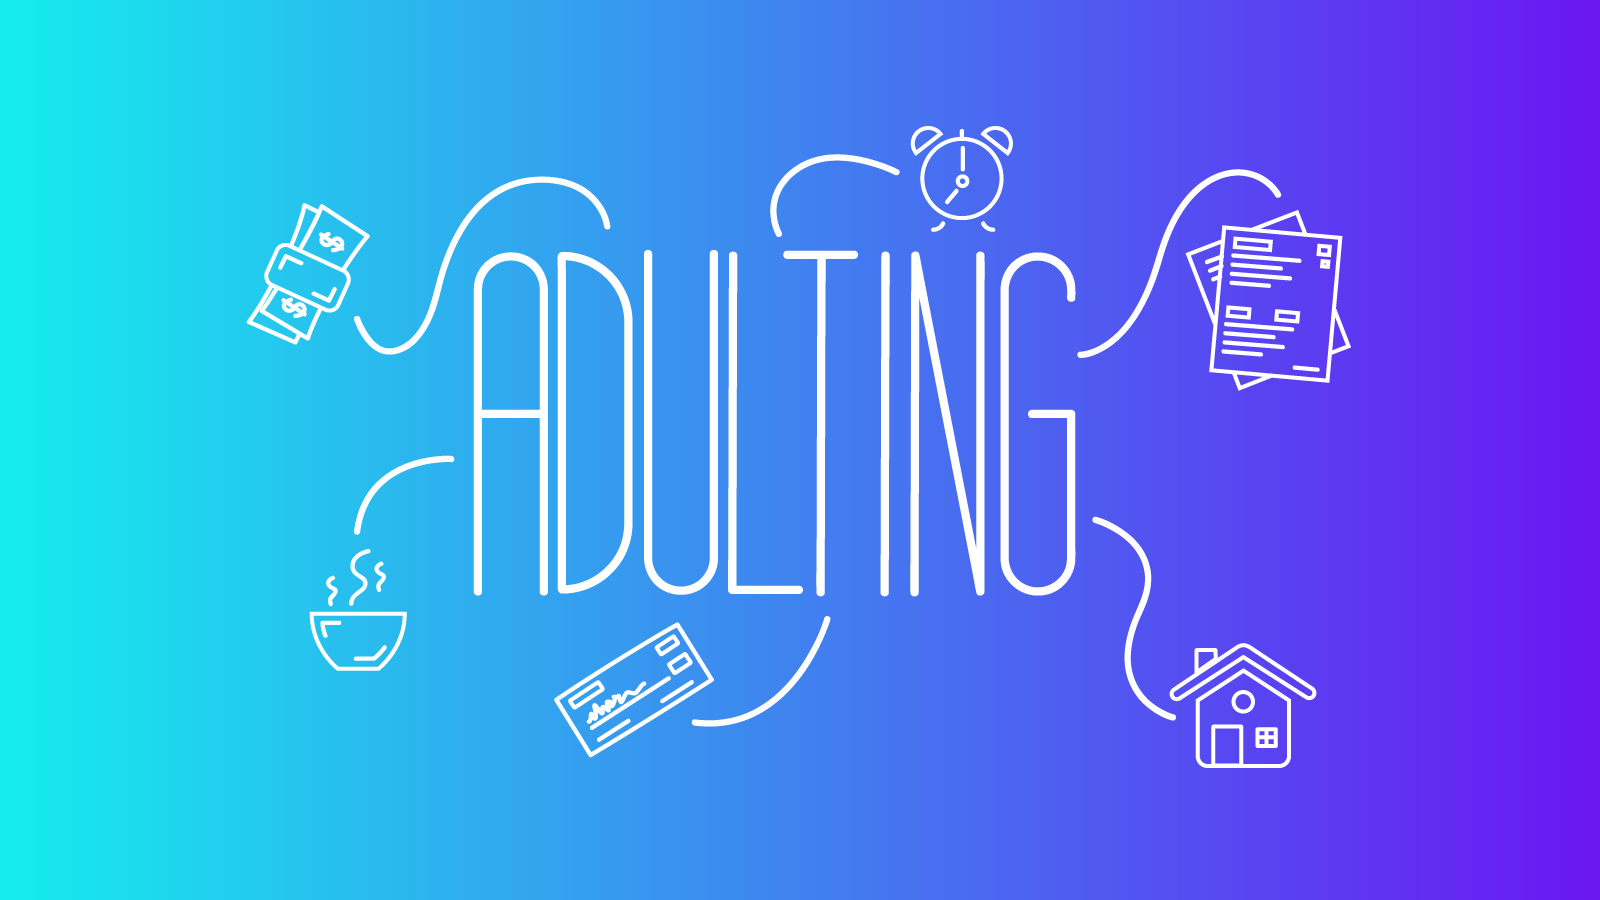 Adulting1920x1080.png